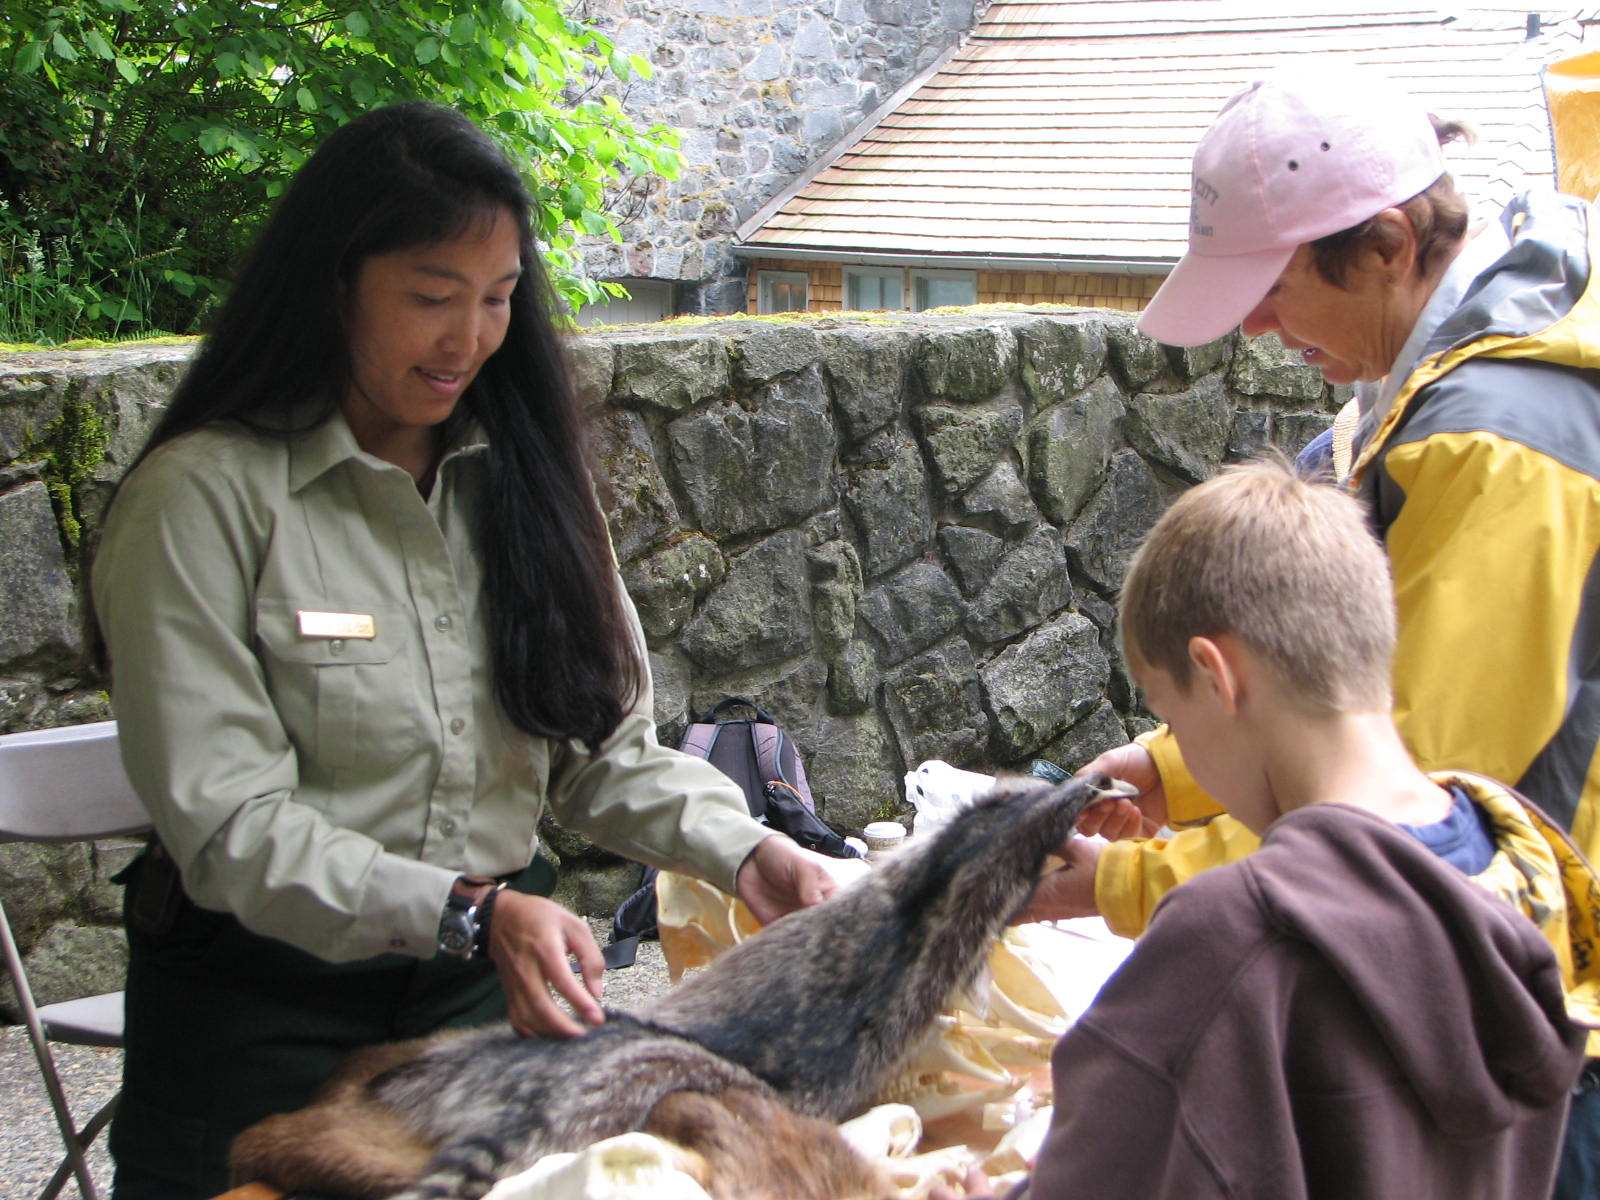 FS employee showing pelts to kids